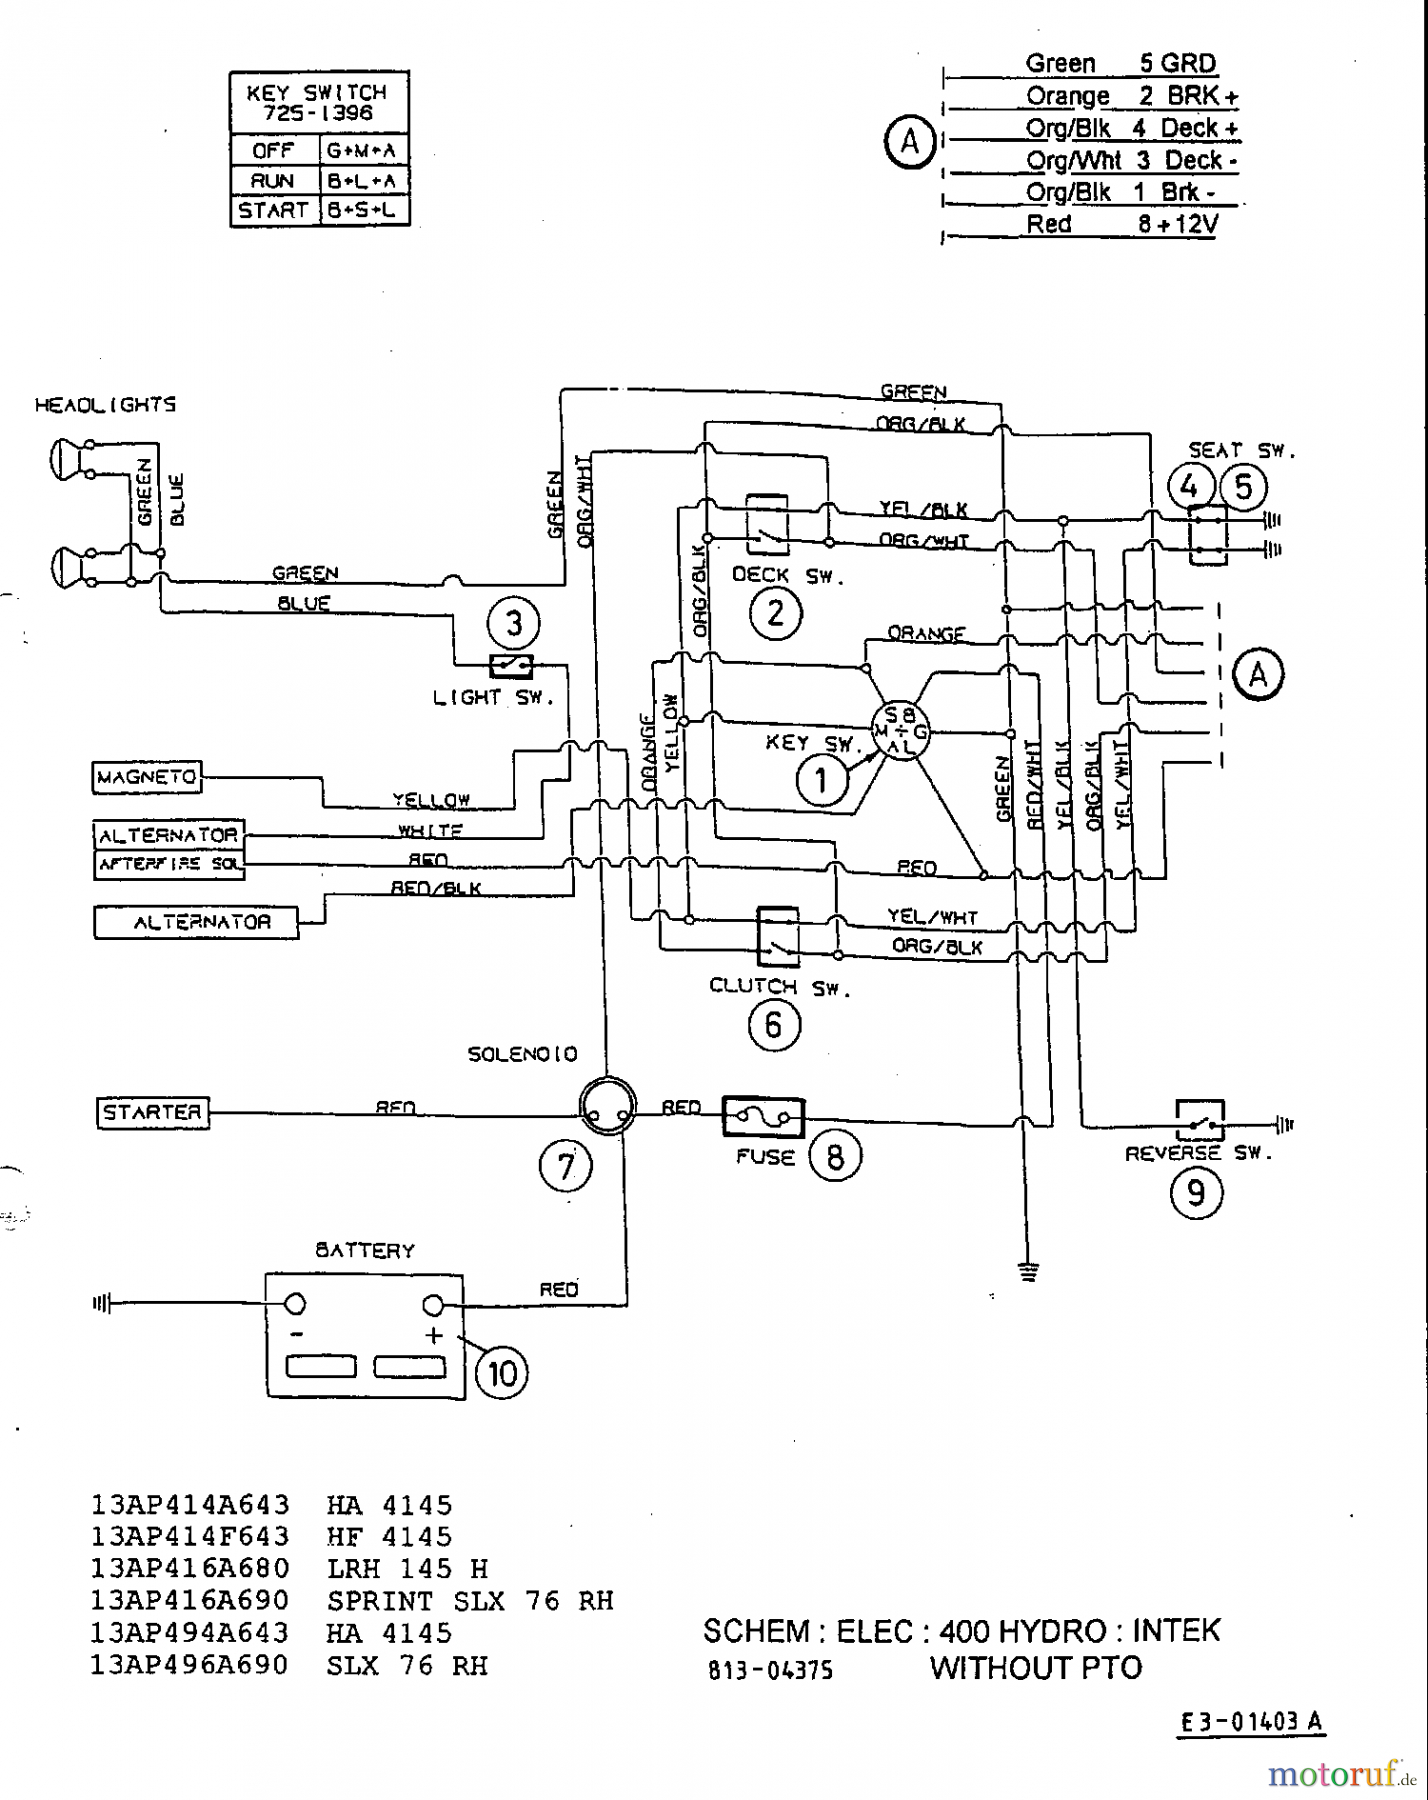 Mtd Riding Mower Wiring Diagram With Yard Machine On | Mtd Ride On - Mtd Riding Lawn Mower Wiring Diagram